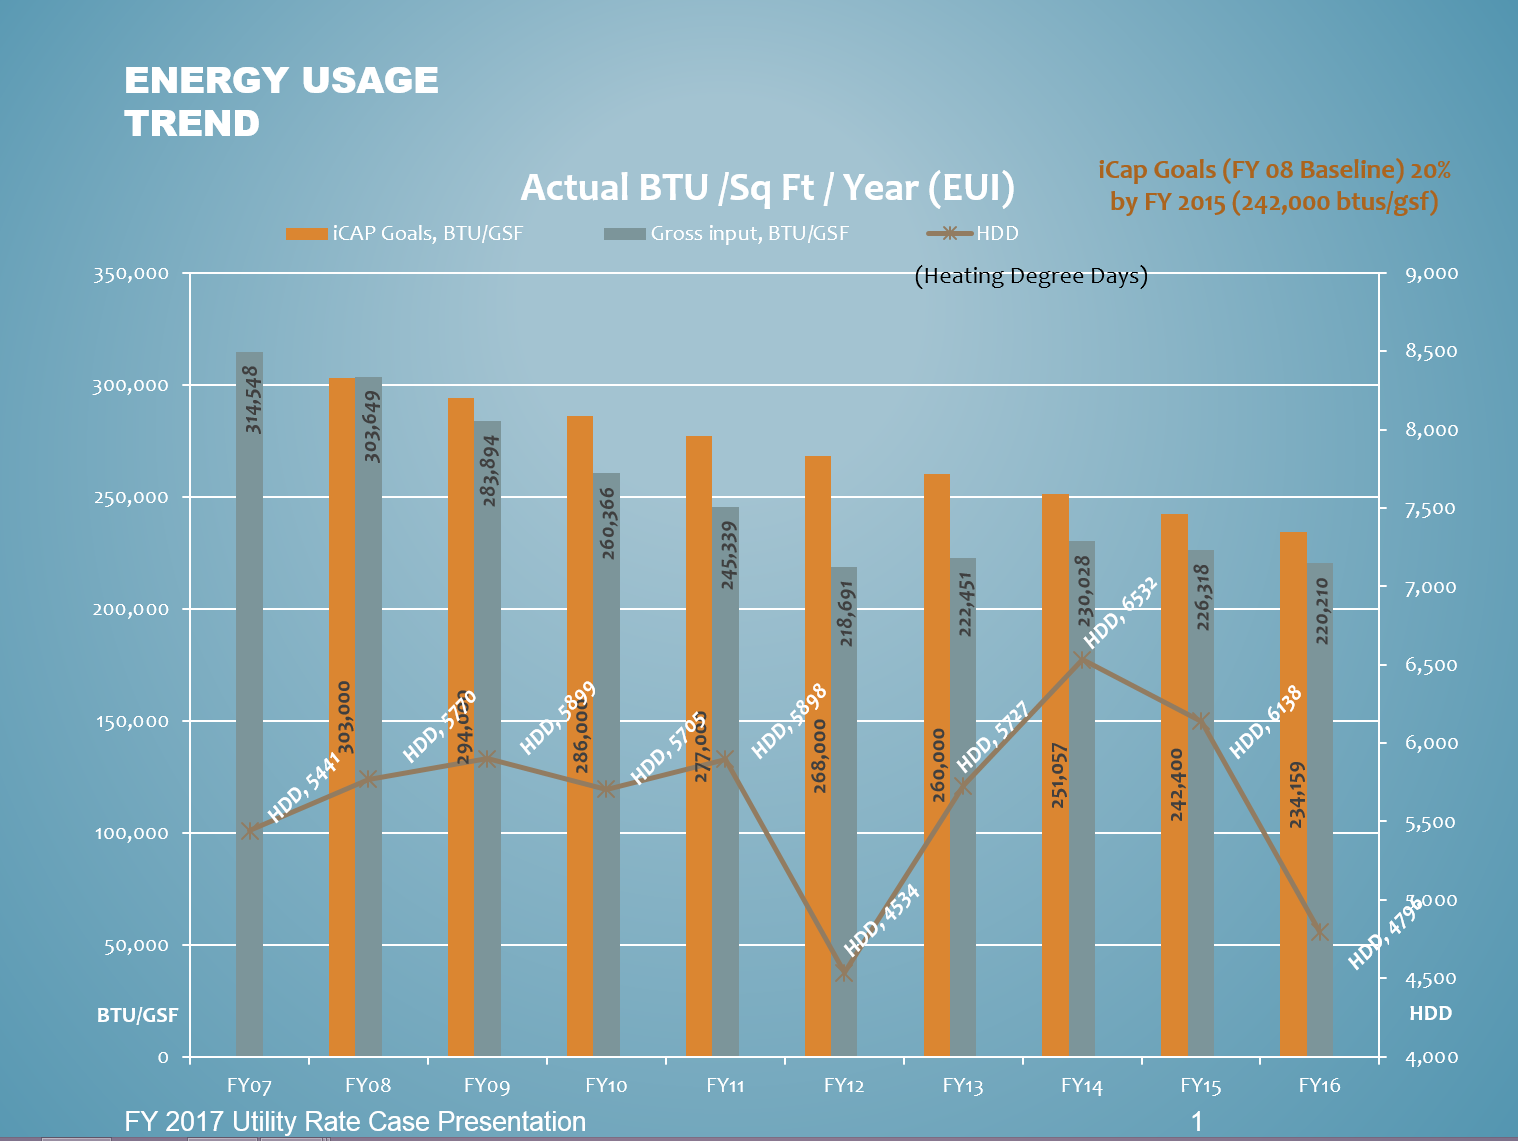 Energy Trend Usage